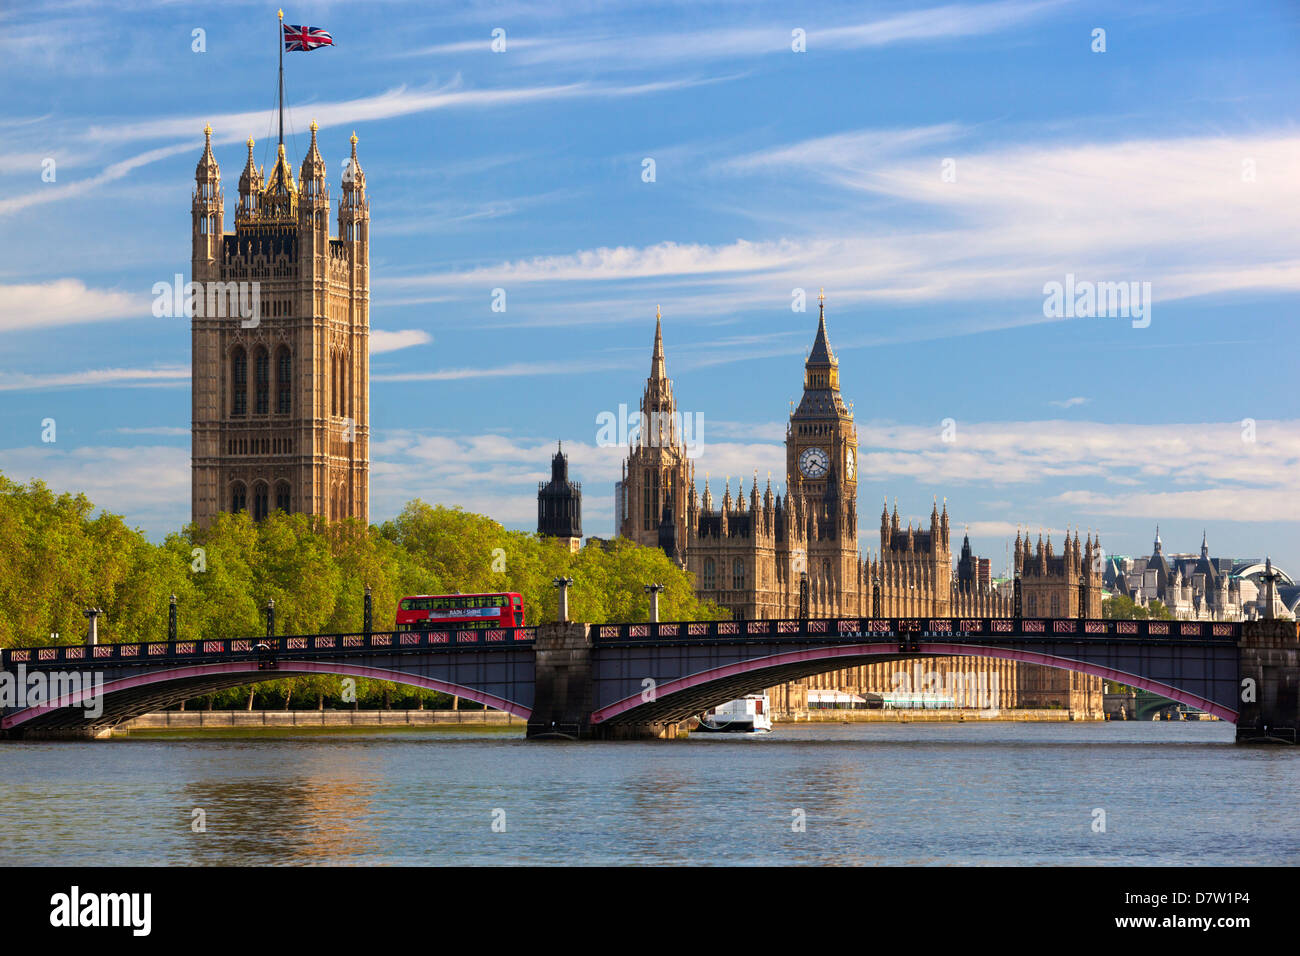 Houses of Parliament and Lambeth Bridge over the River Thames, Westminster, London, England, United Kingdom - Stock Image